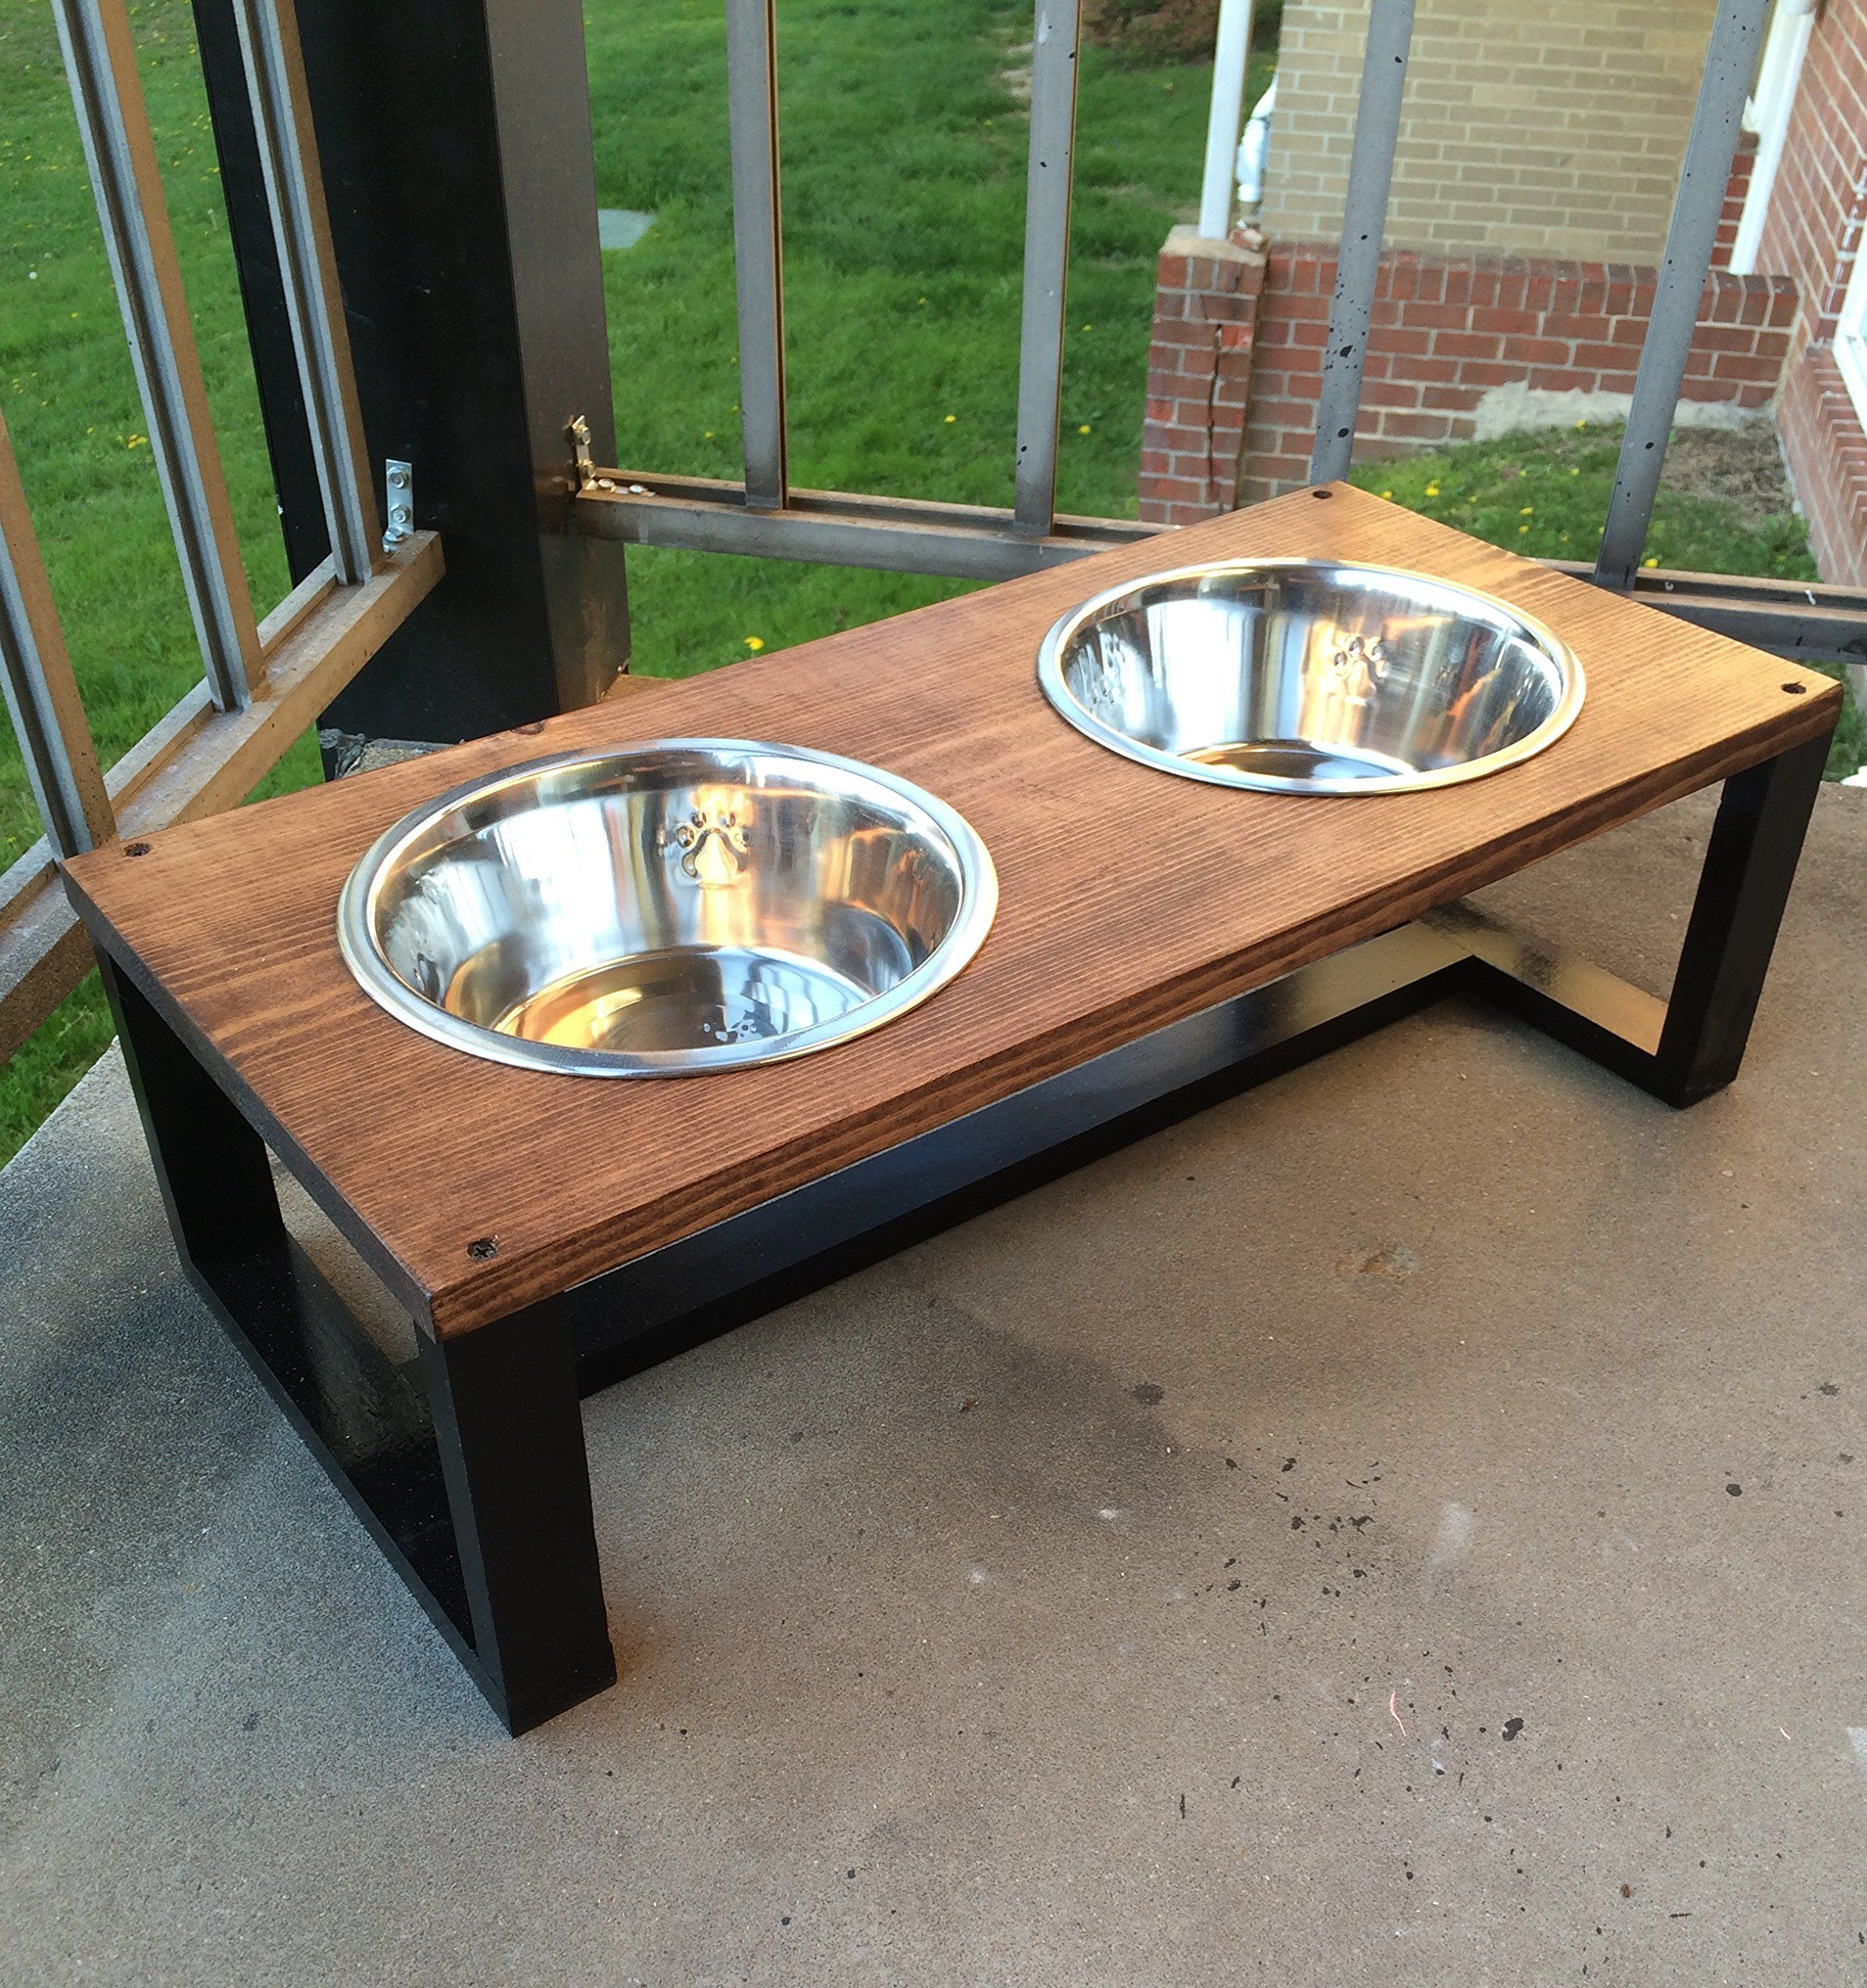 Modern Pet Bowl Holders Wood Dog Bowl Holder Contemporary Pet